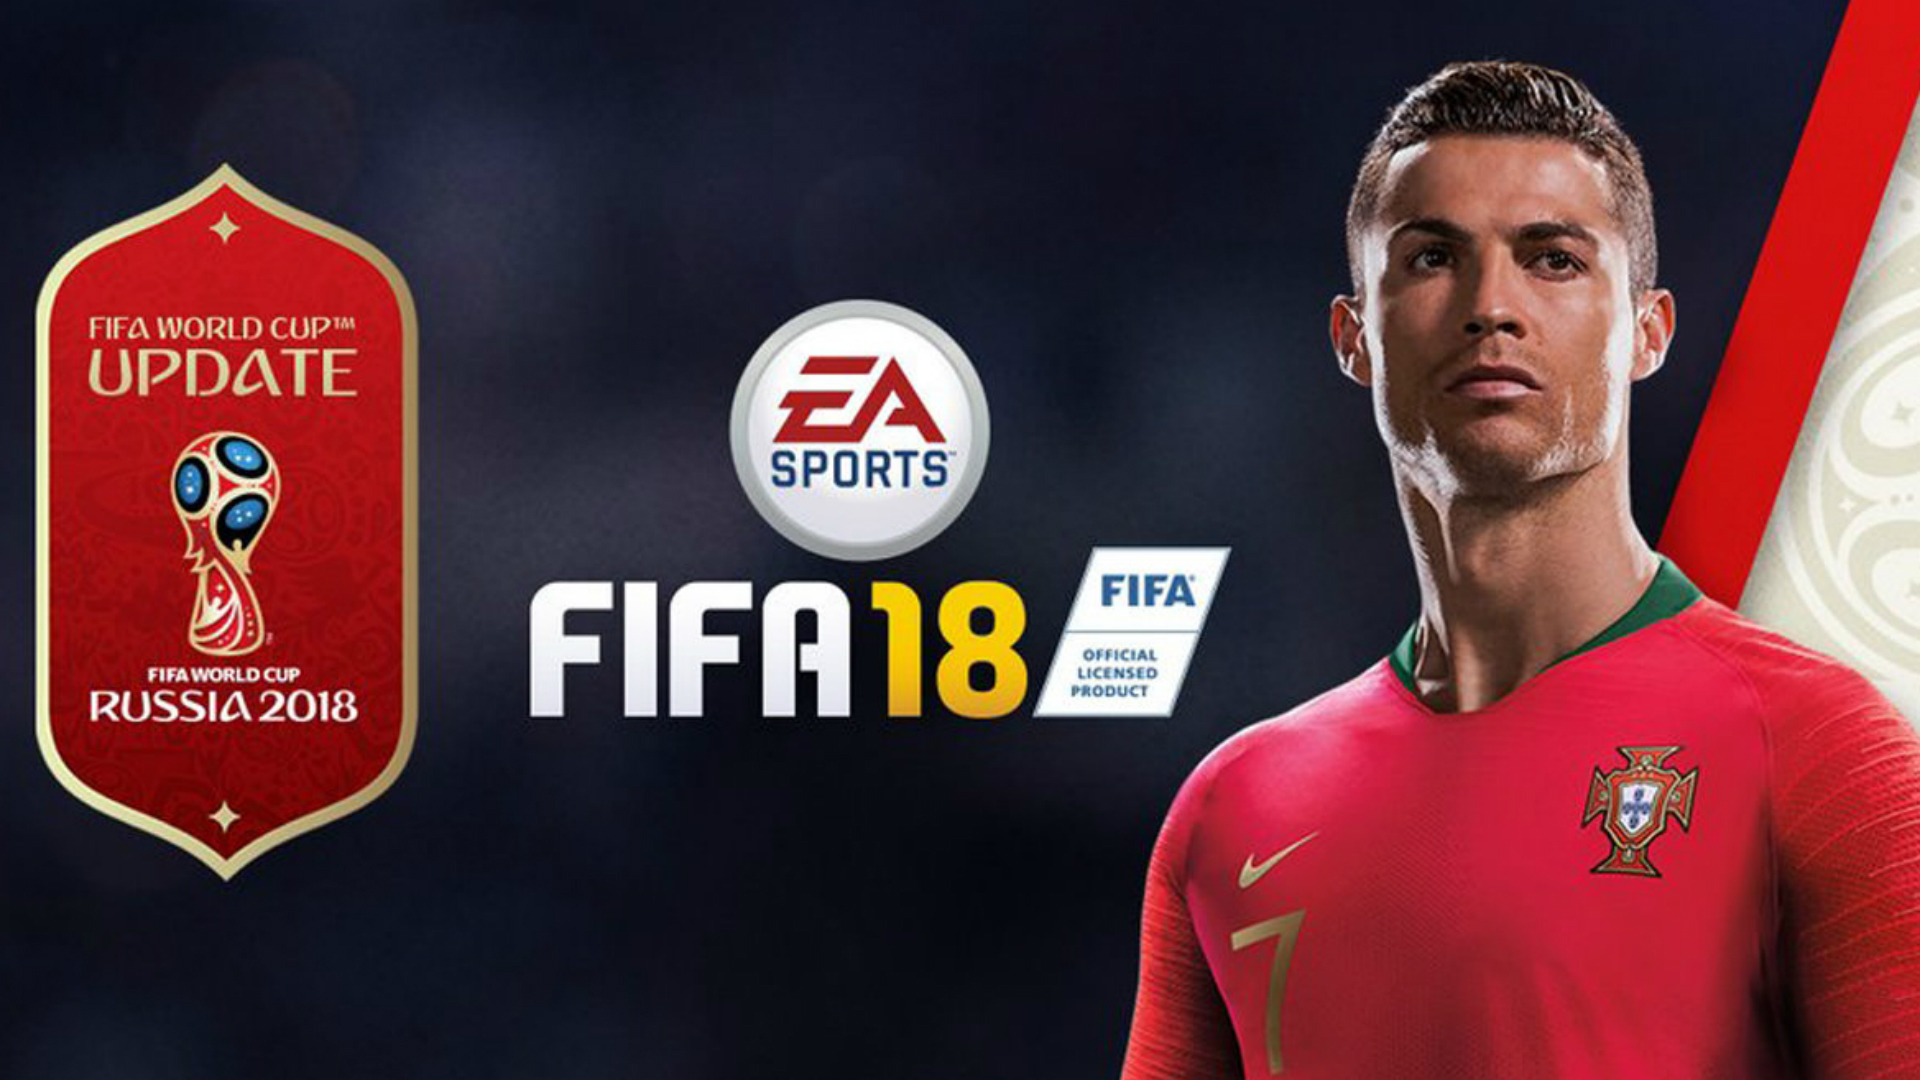 'FIFA 18' World Cup Update Launches